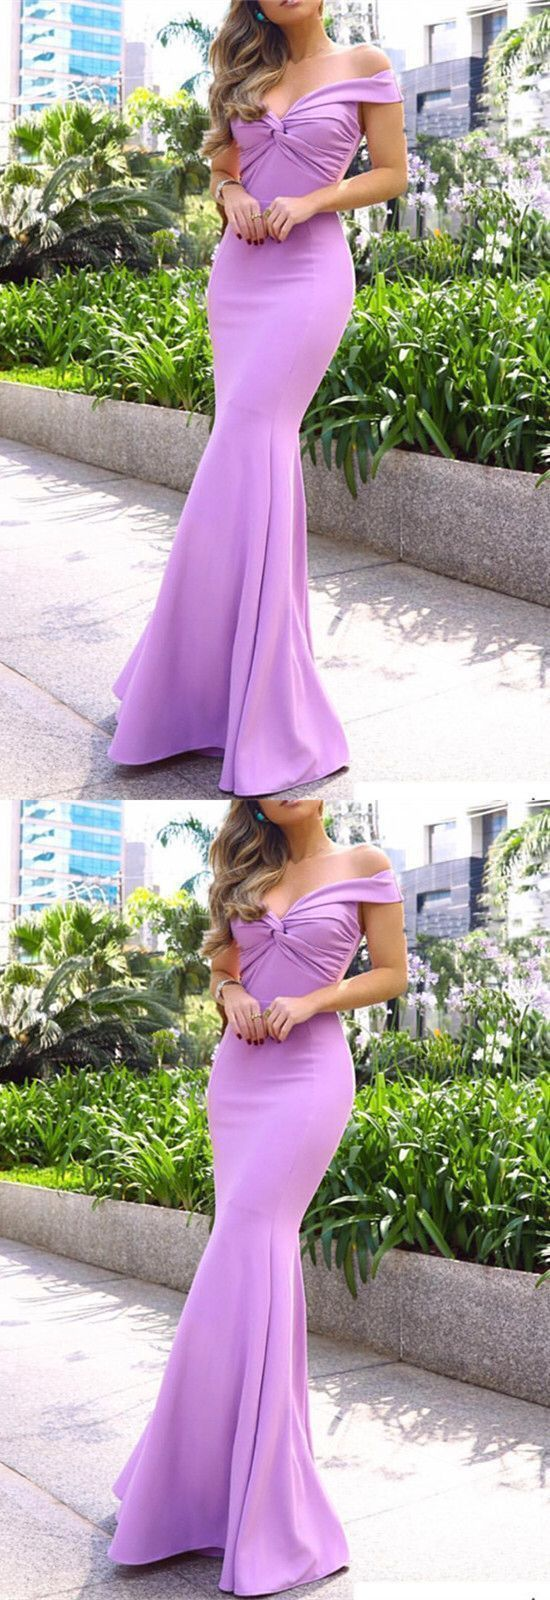 Mermaid Off the Shoulder Evening Dress, Sexy Long Prom Dress ,E0597